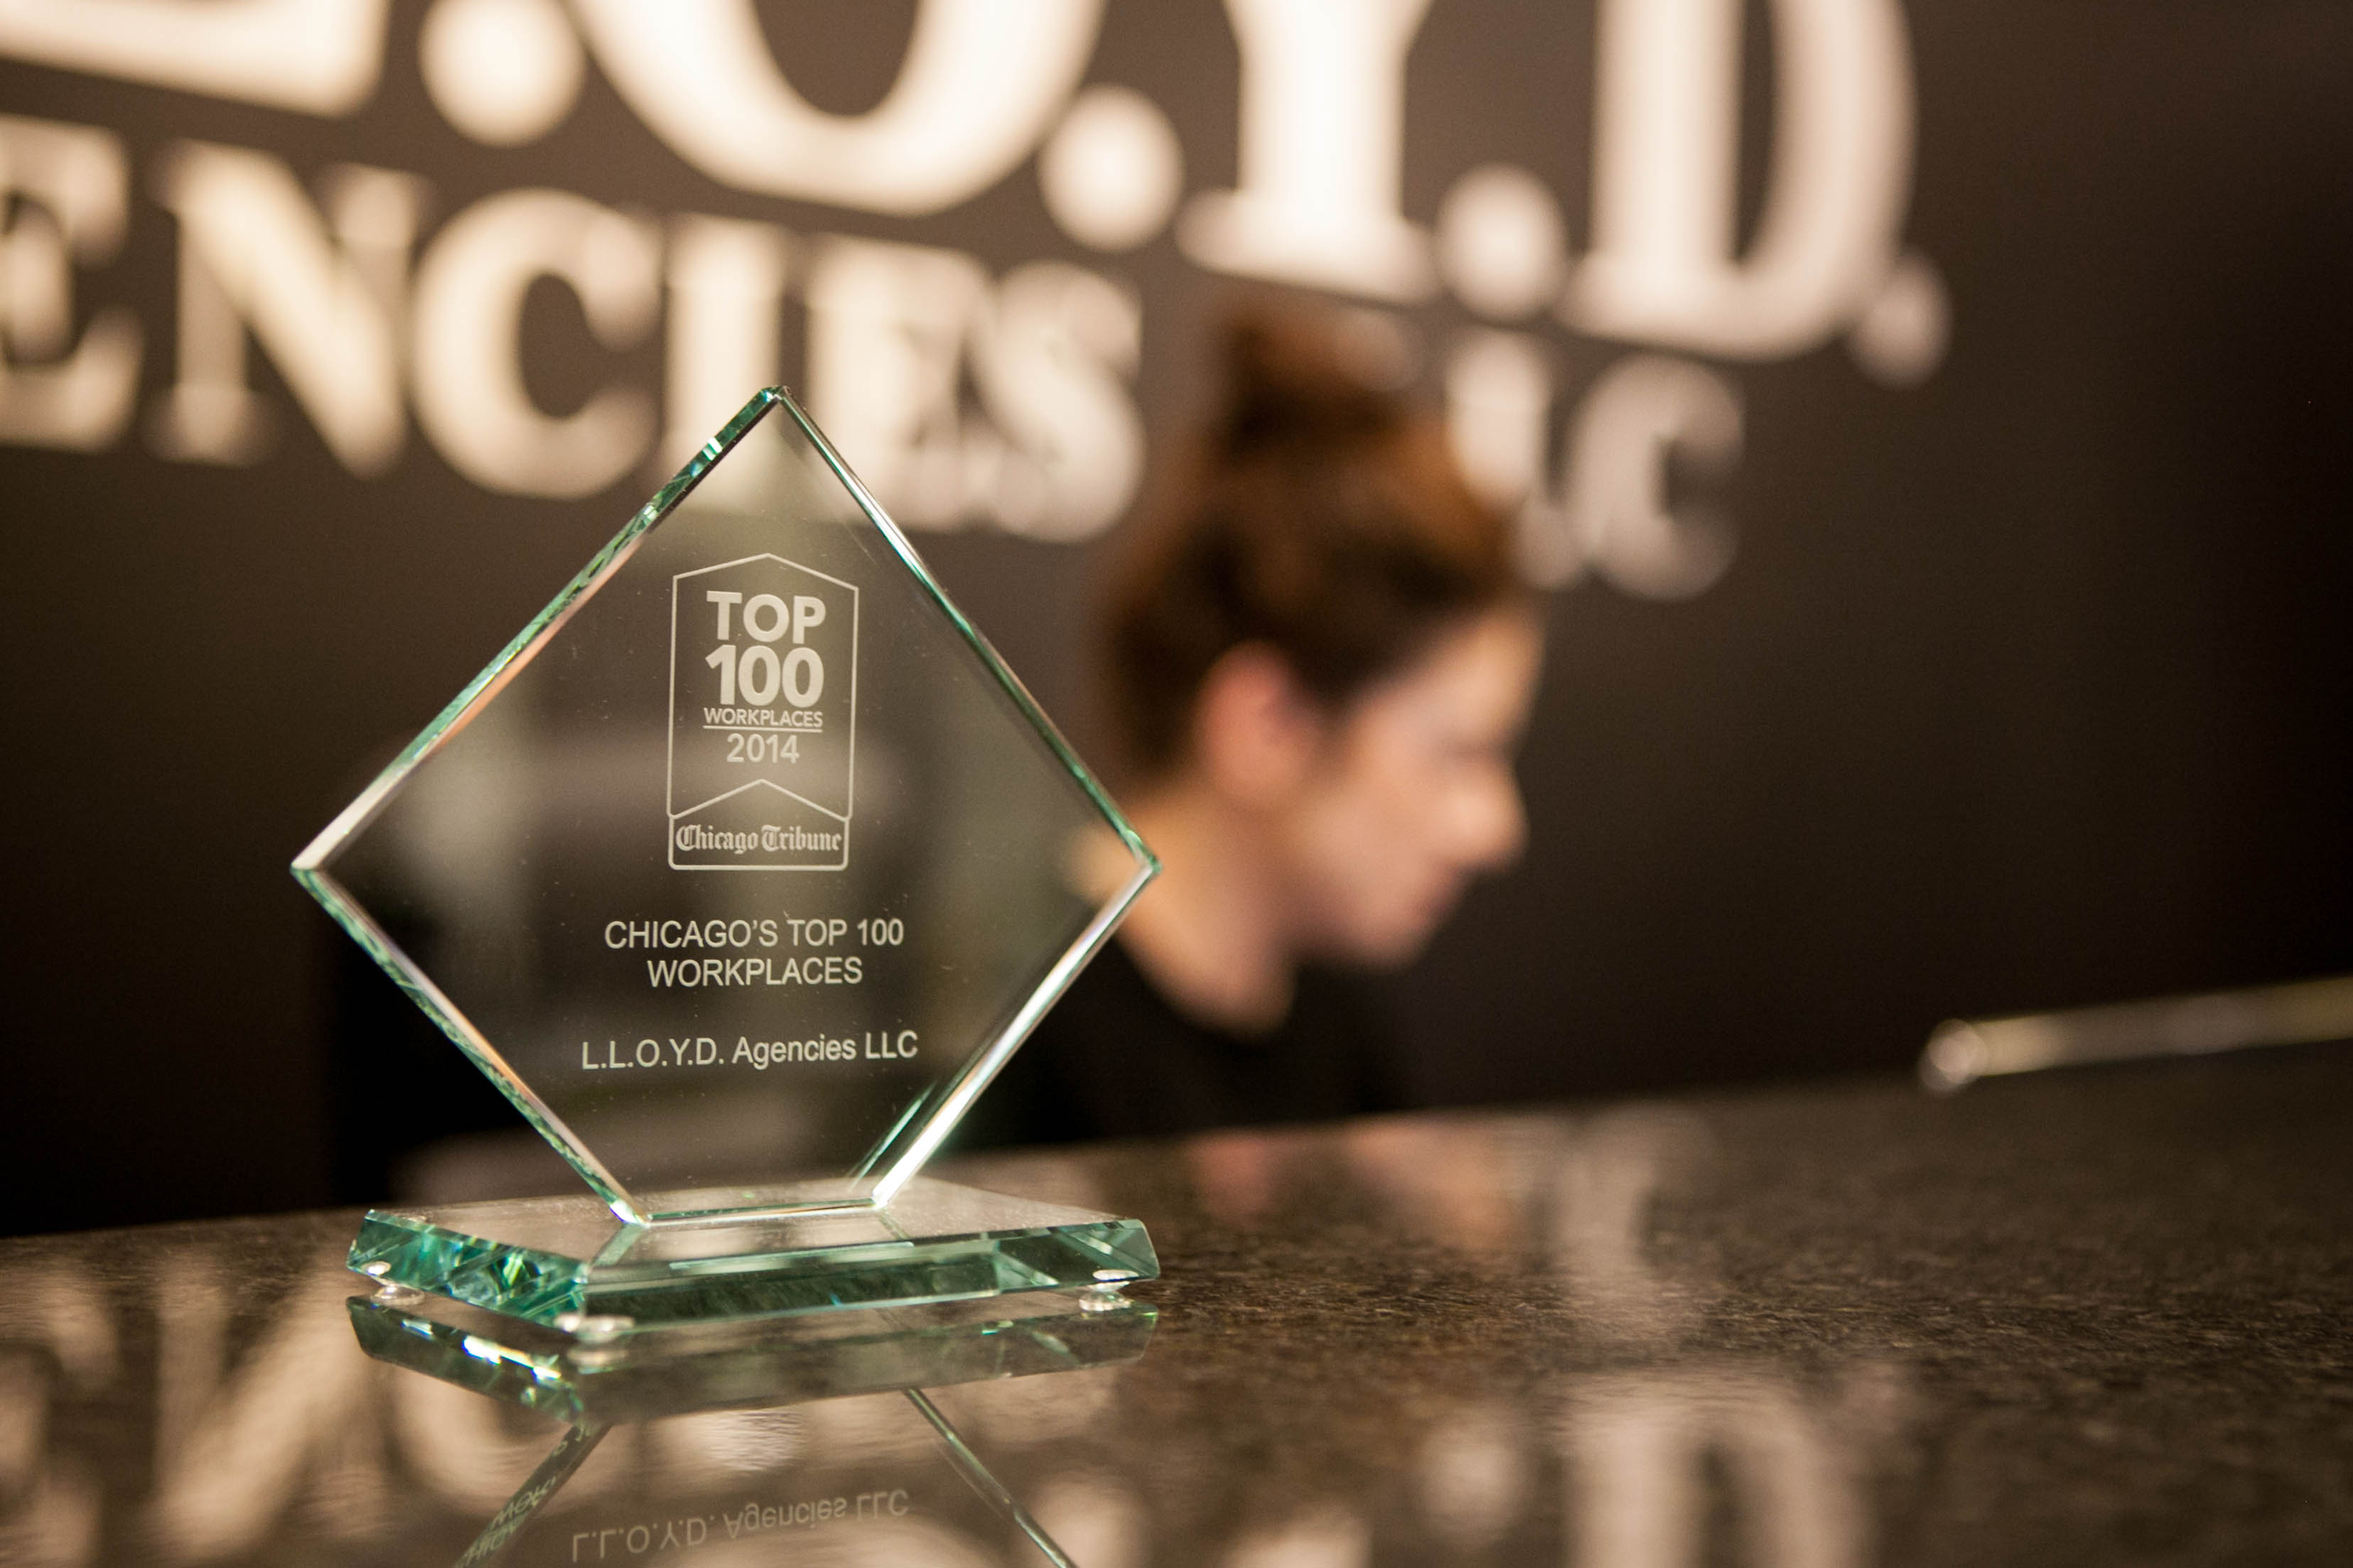 Lloyd agencies top employer